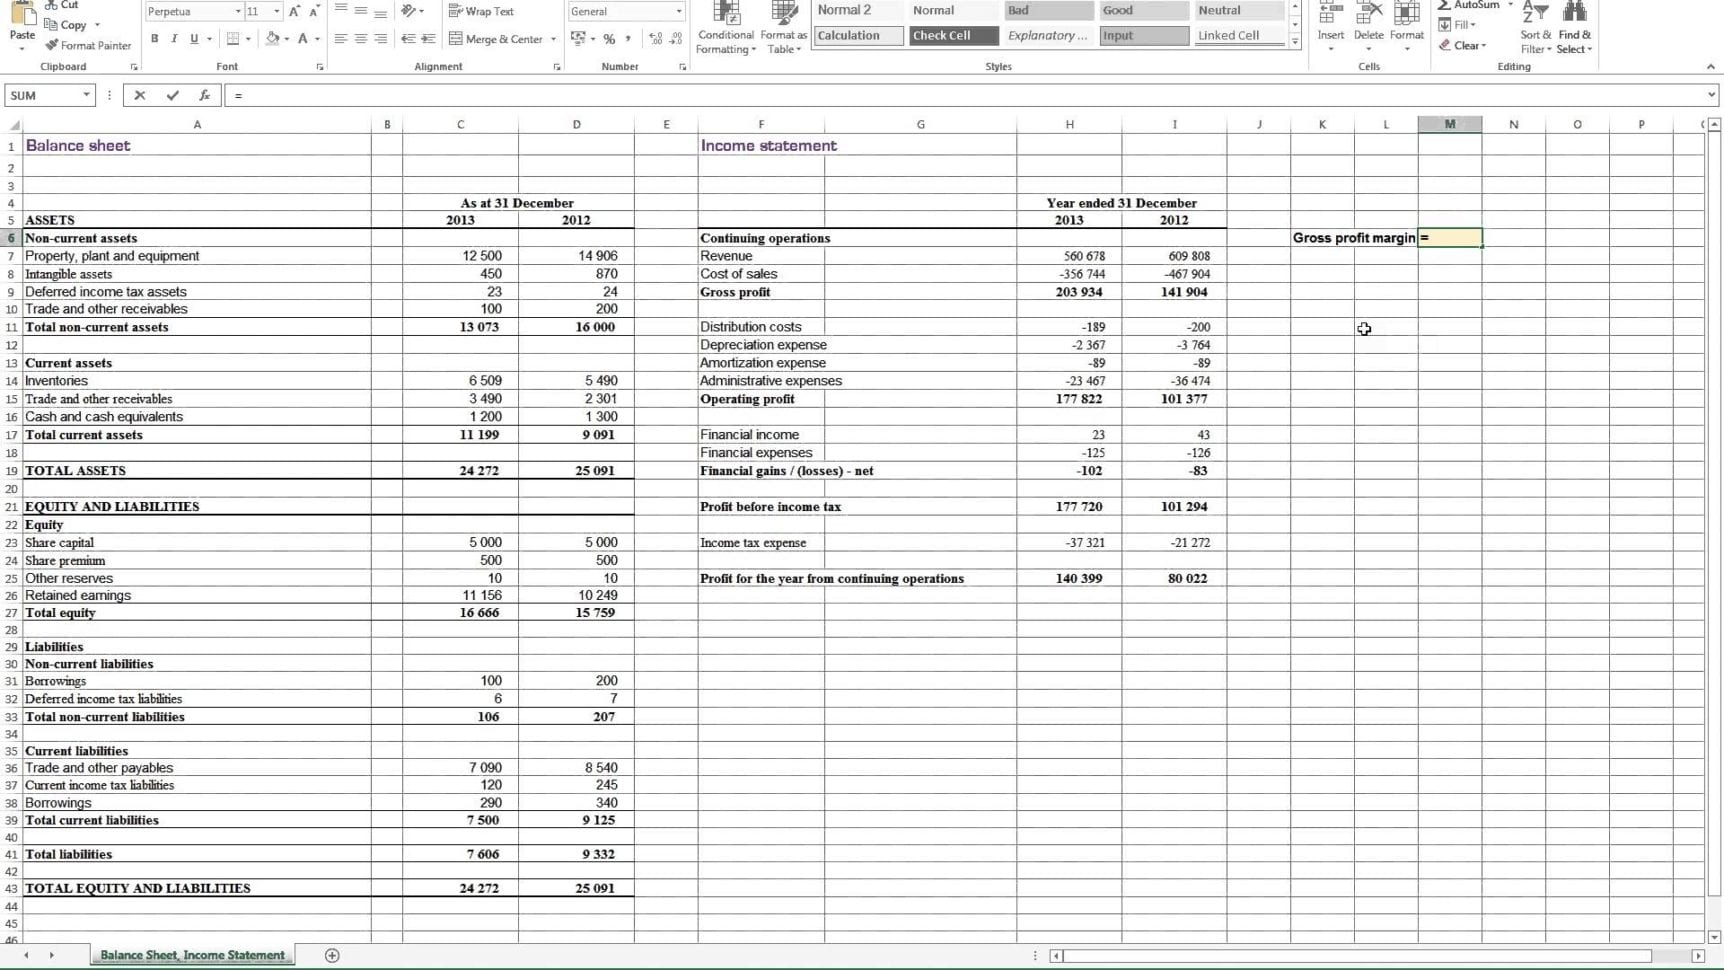 Excel Profit And Loss Formula Profit And Loss Template Uk Profit Spreadsheet Example How To Prepare Profit And Loss Account In Excel Profit And Loss Statement For Small Business Profit Margin Spreadsheet Template Profit And Loss Statement Pdf  Profit And Loss Statement Template For Self Employed Profit Spreadsheet Template Spreadsheet Templates for Busines